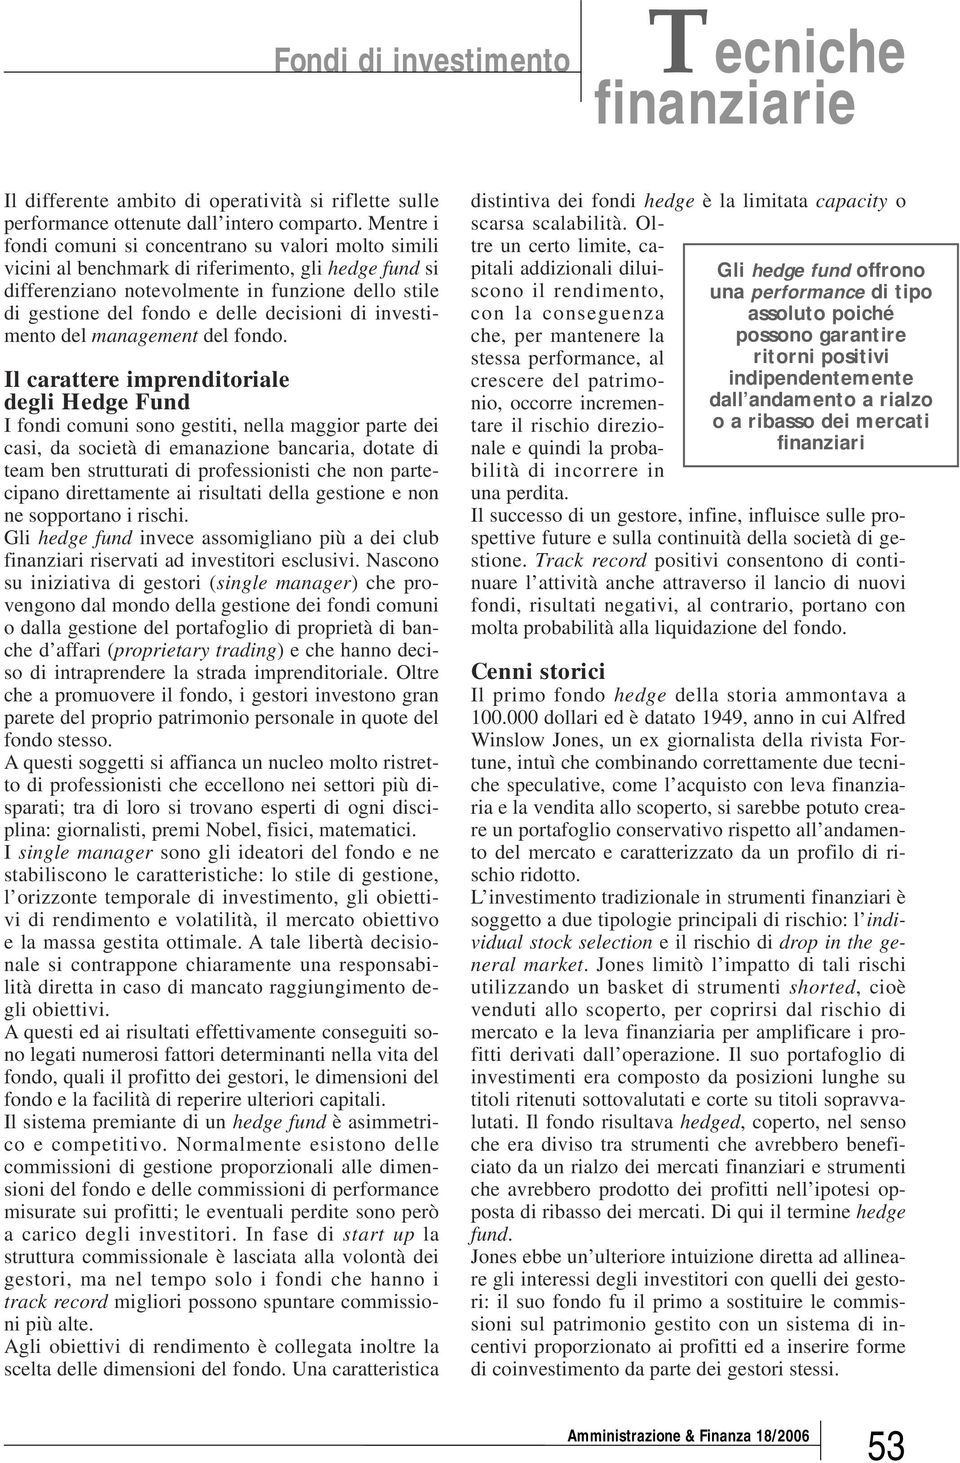 decisioni di investimento del management del fondo.